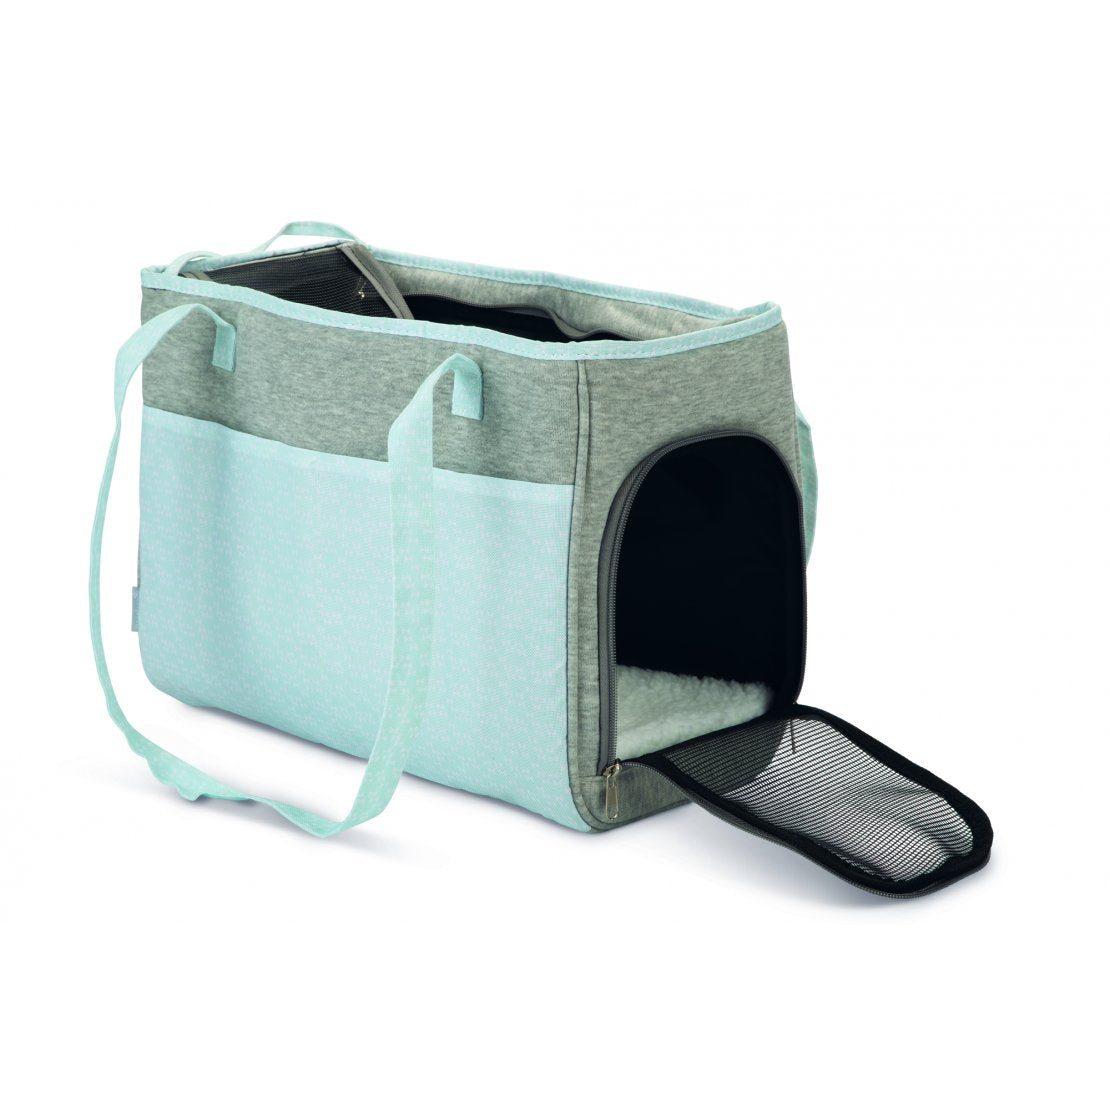 Beeztees Puppy Shoulder Bag - Pica's Pets